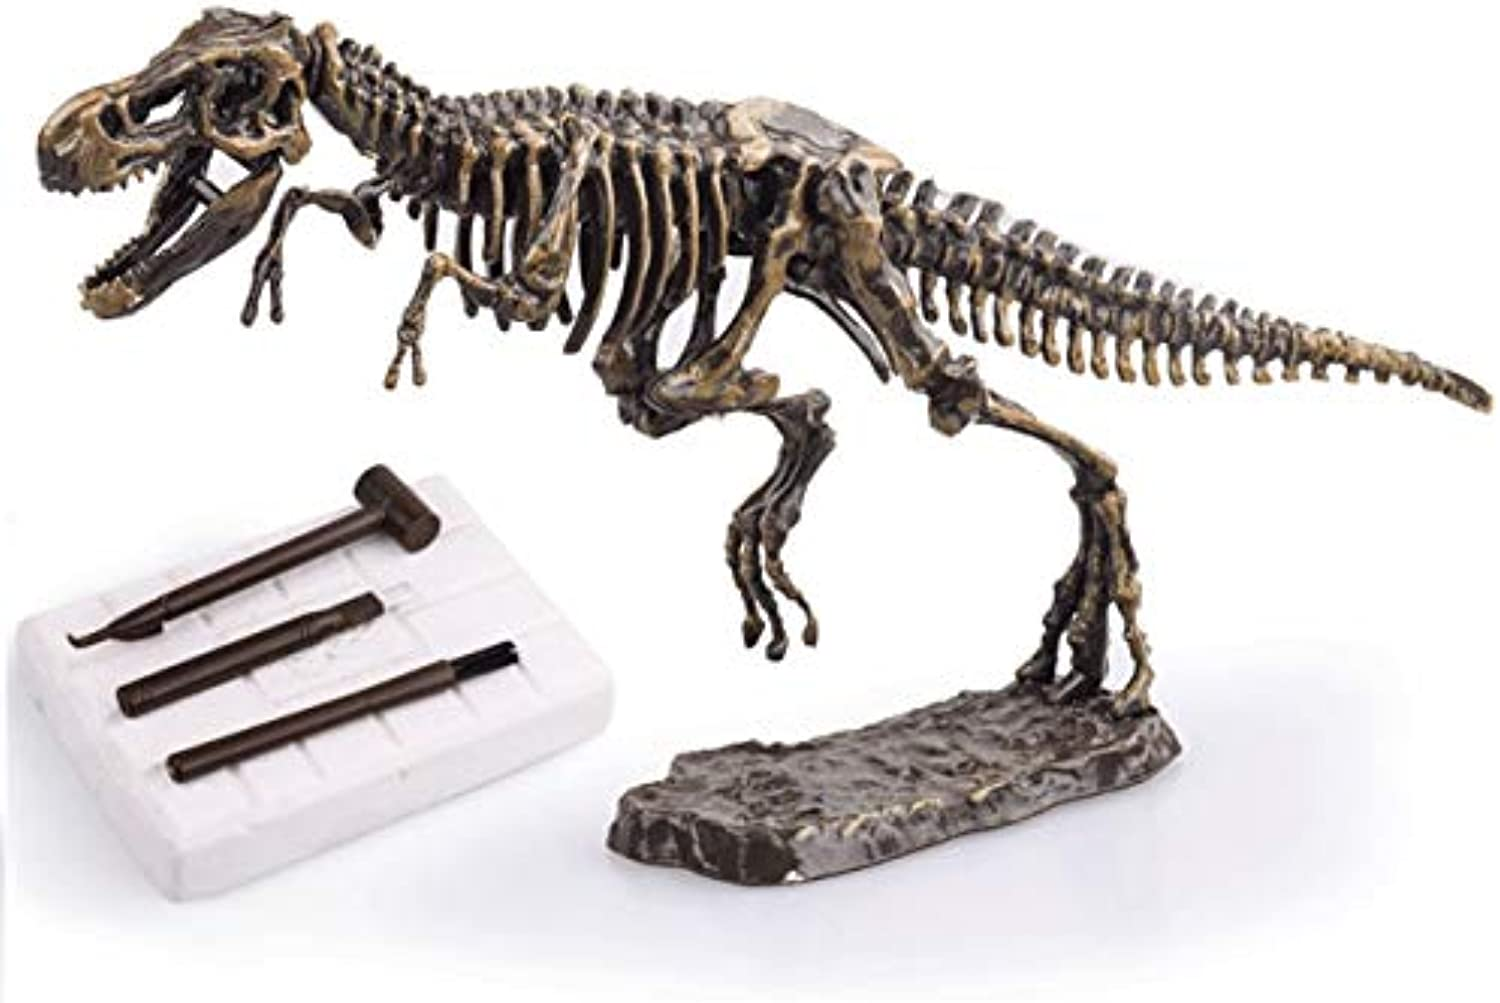 Laliva Dinosaur Science Kit Dig Up Dino Fossils and Assemble a T-Rex Skeleton, Mammoth,Triceratops - (color  t rex)